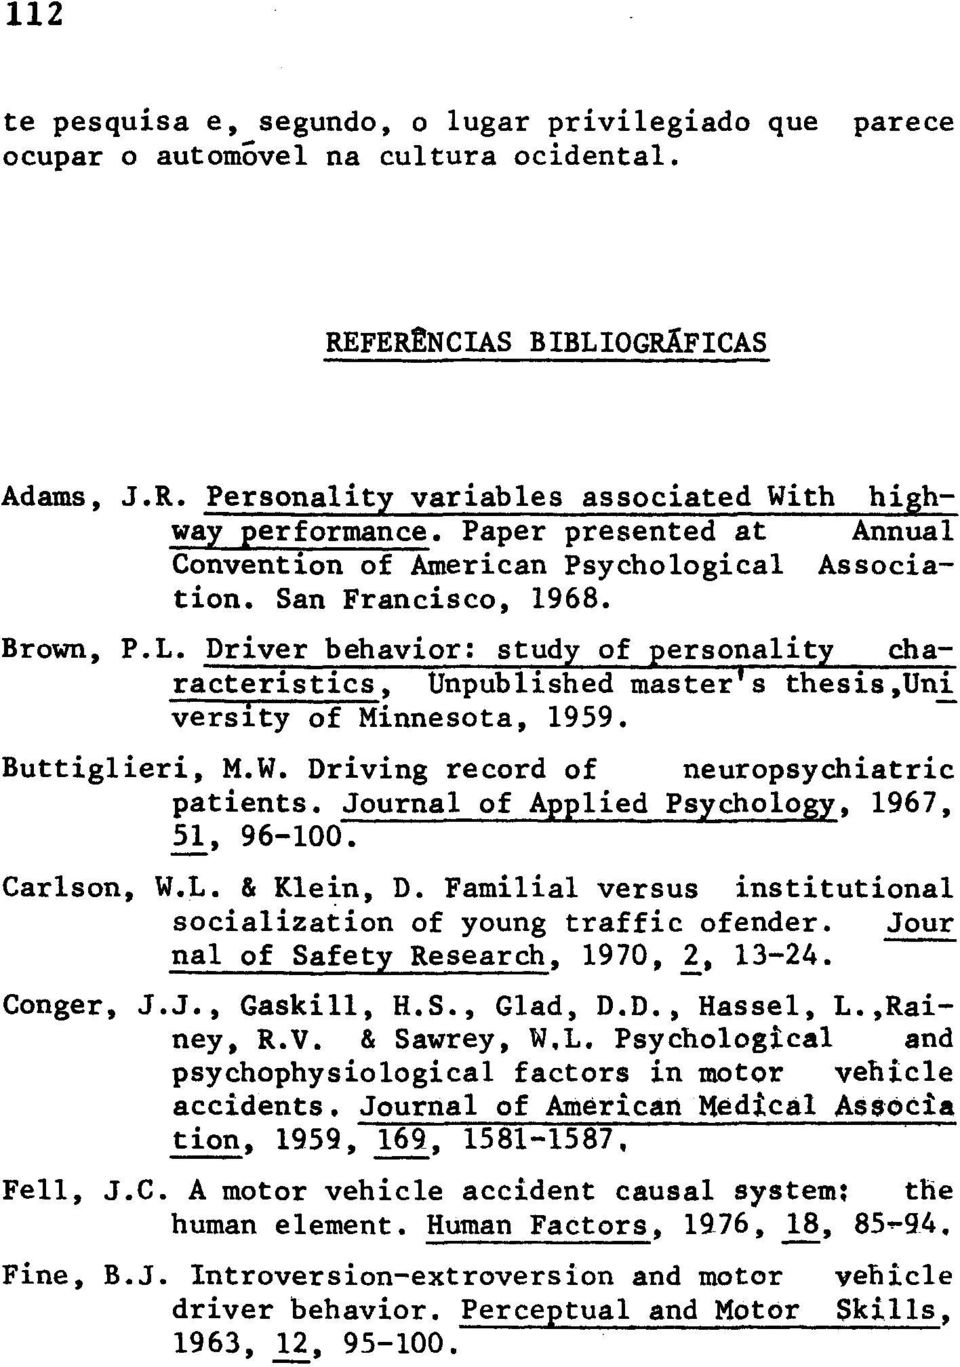 uni versity of Minnesota, 1959. Buttiglieri, M.W. Driving record of neuropsychiatric patients. Journal of Applied Psychology, 1967, 51., 96-100. Carlson, W.L. & Klein, D.